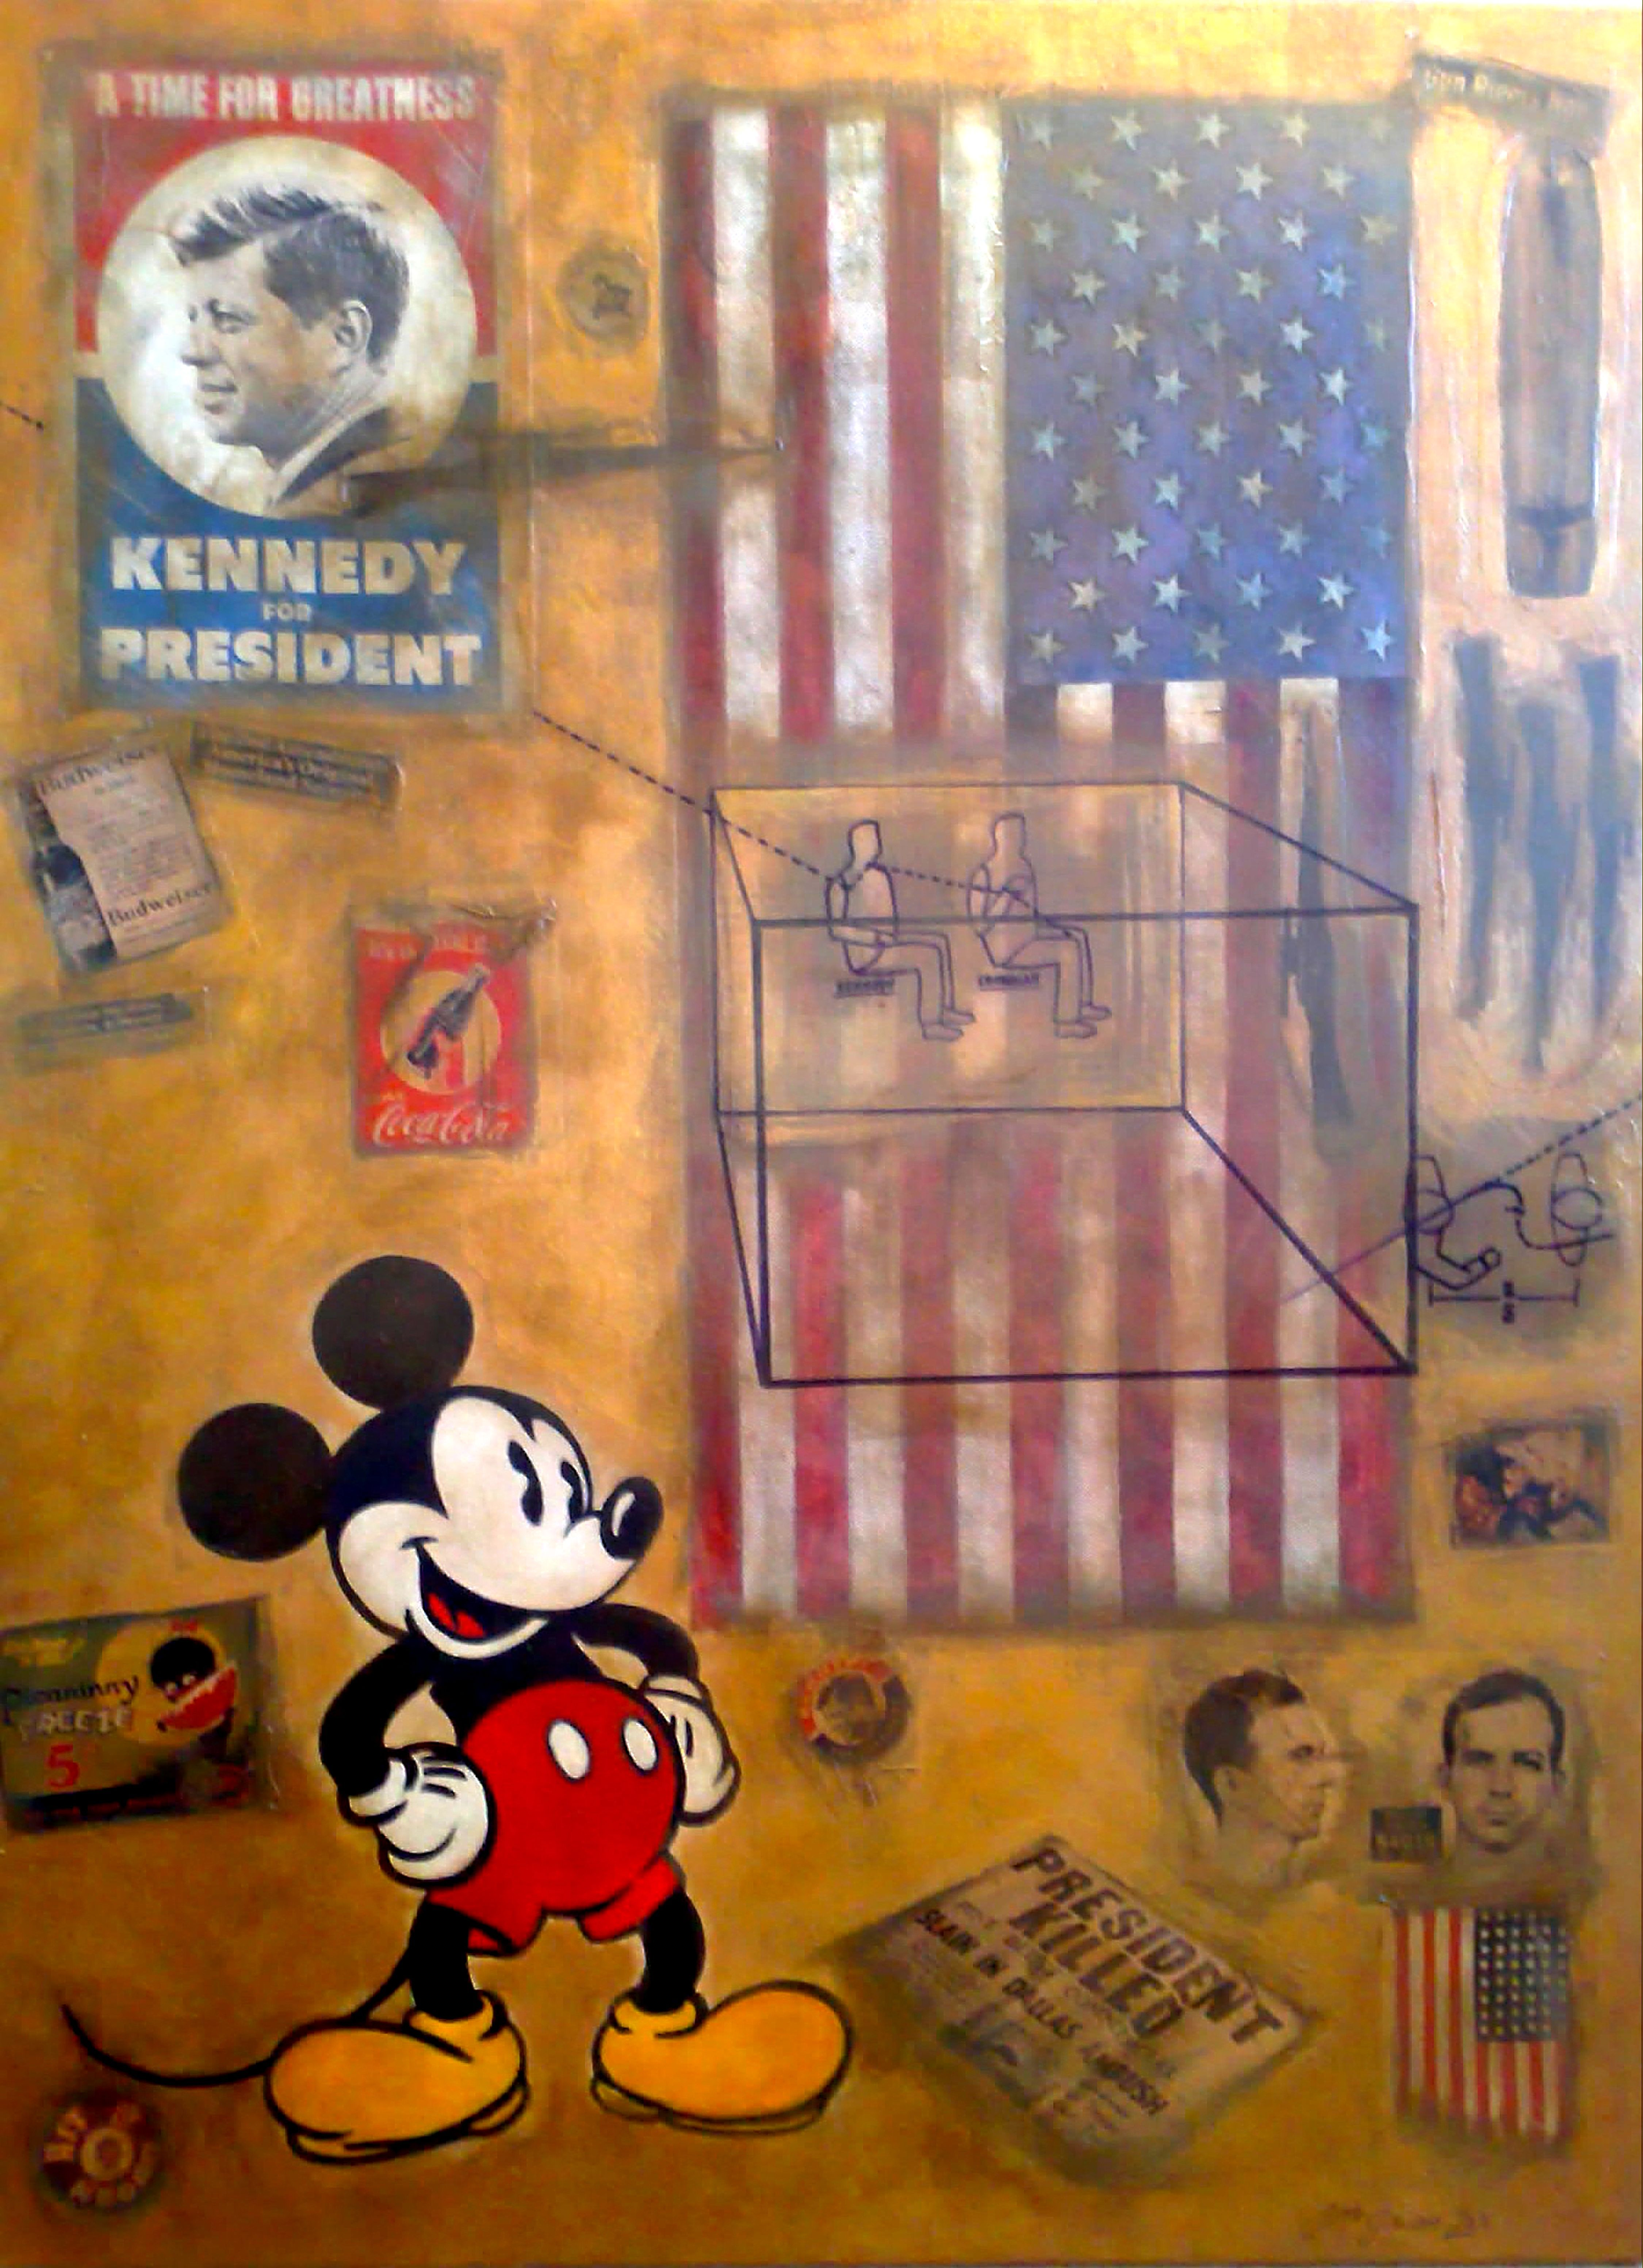 America's Dream / Assassination of JFK and comment on Pop Culture in USA accepting Guns, Racism  Hate being as acceptable as Bud, Coca-Cola and Mickey Mouse